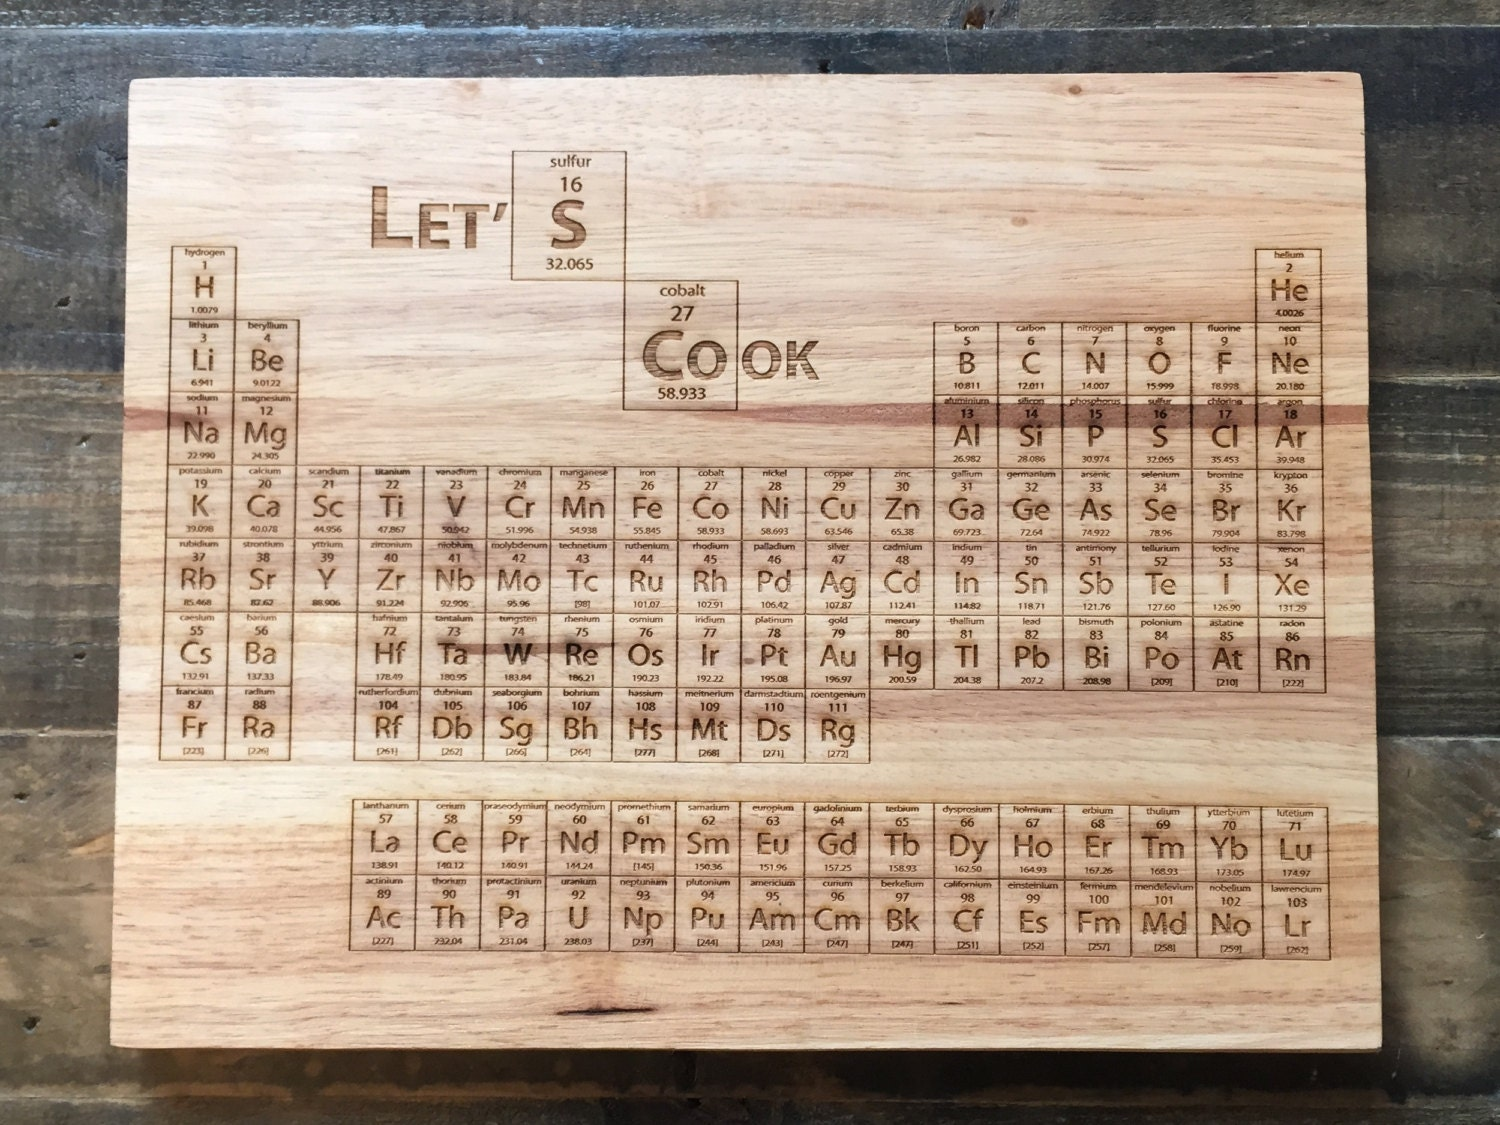 sale breaking bad periodic table cutting kitchen cutting table Breaking Bad Periodic Table Cutting Board Laser Engraved Science Art Engraved Wood Kitchen Decor Geekery Let s Cook Better Call Saul